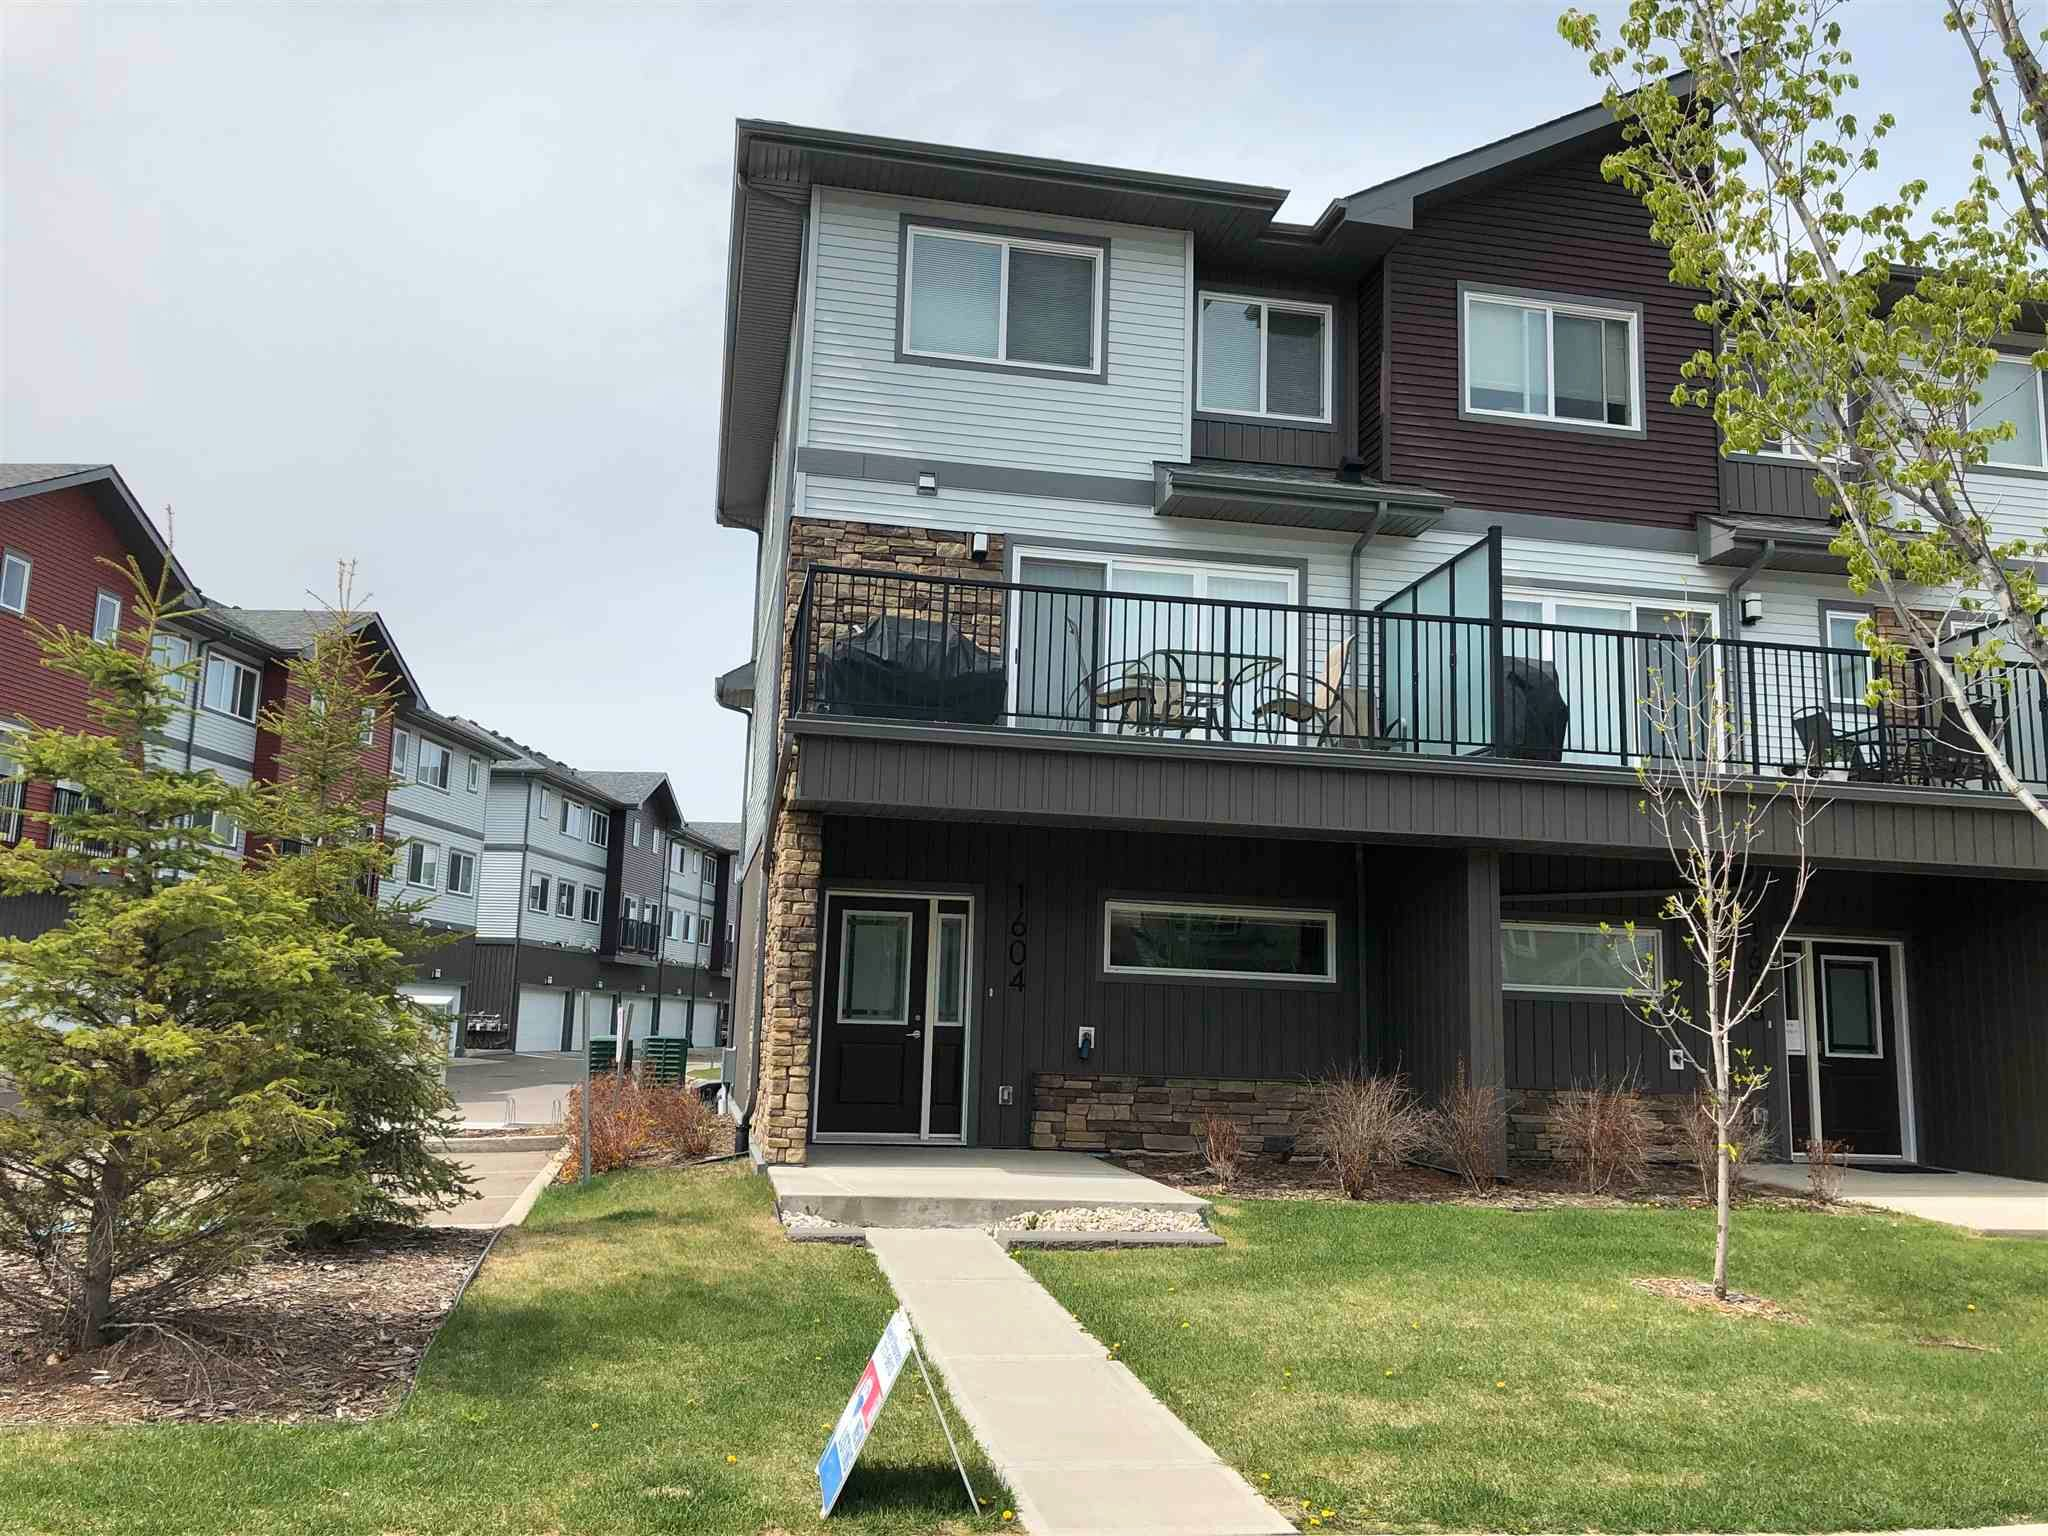 Main Photo: 1604 33A Street in Edmonton: Zone 30 Townhouse for sale : MLS®# E4245504